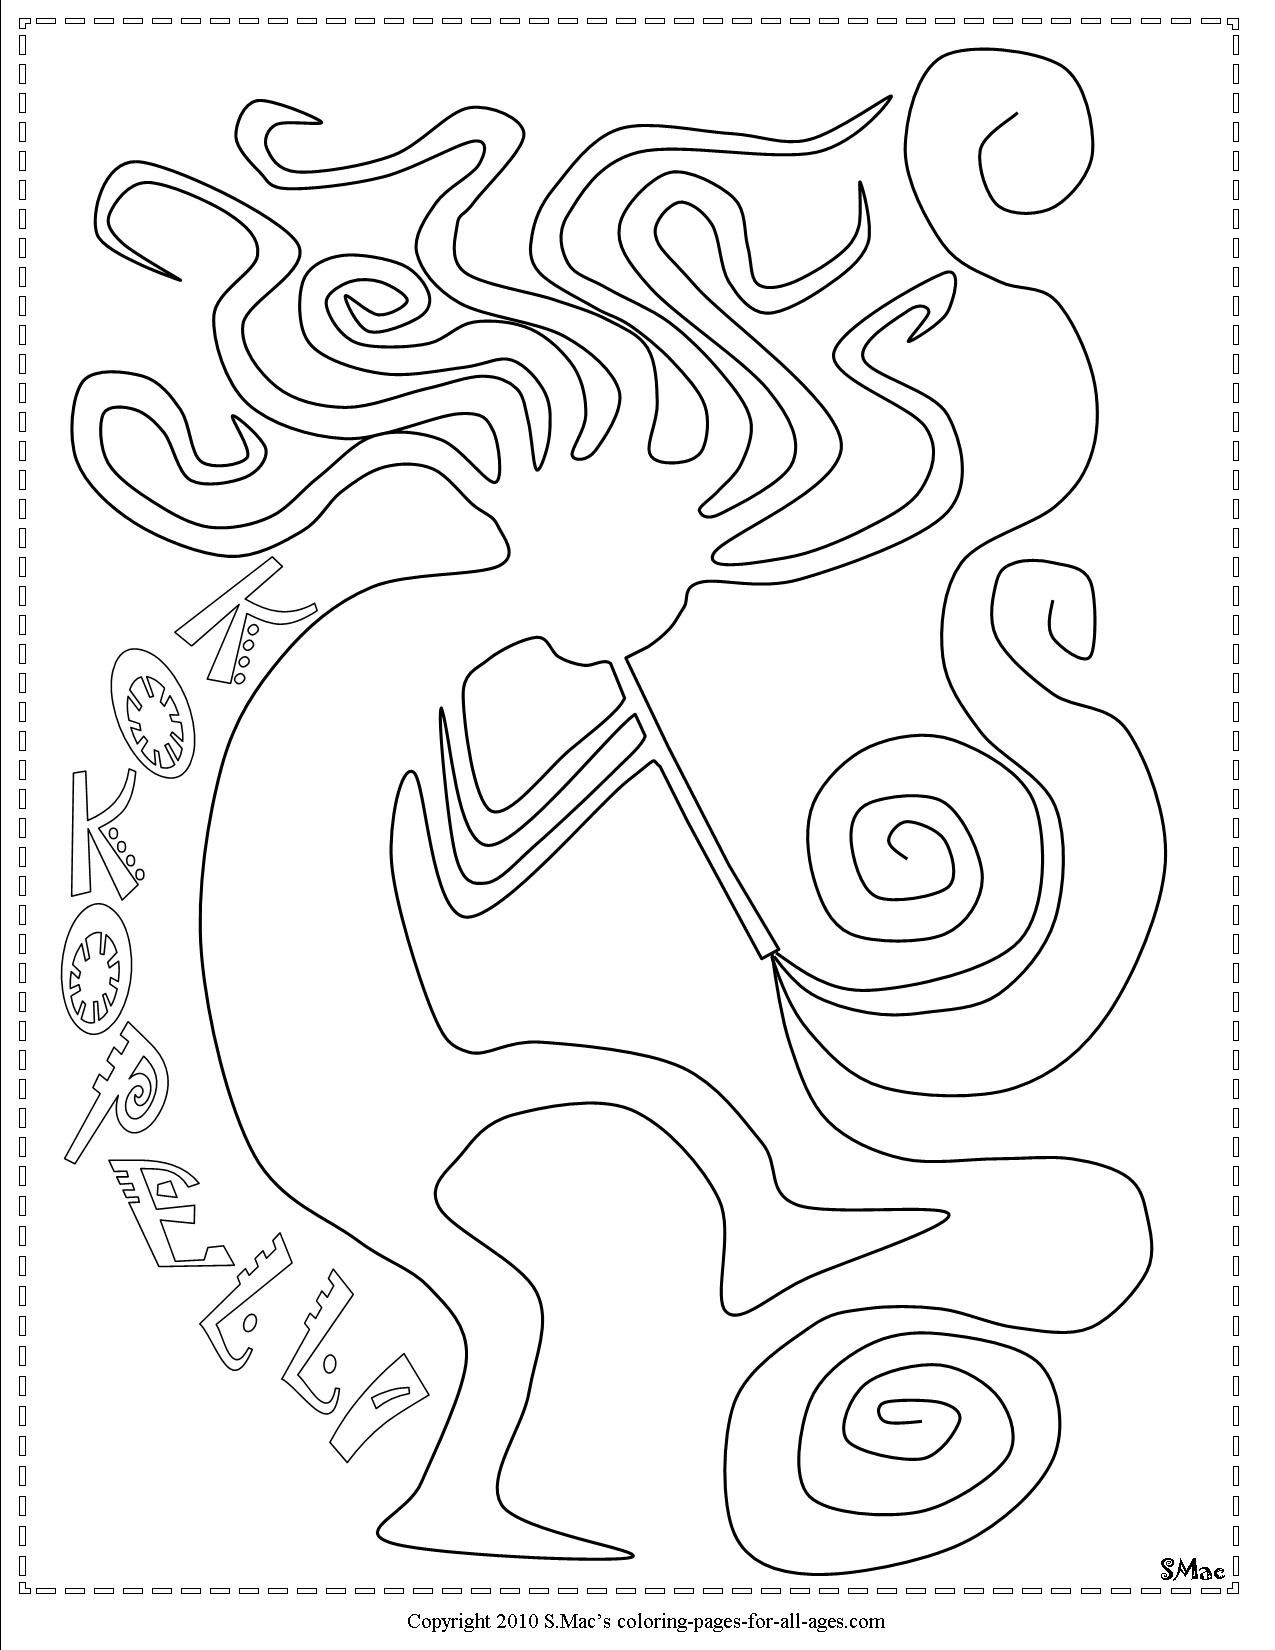 Kokopelli Coloring Pages Kokopelli Art Coloring Pages Native American Quilt Patterns